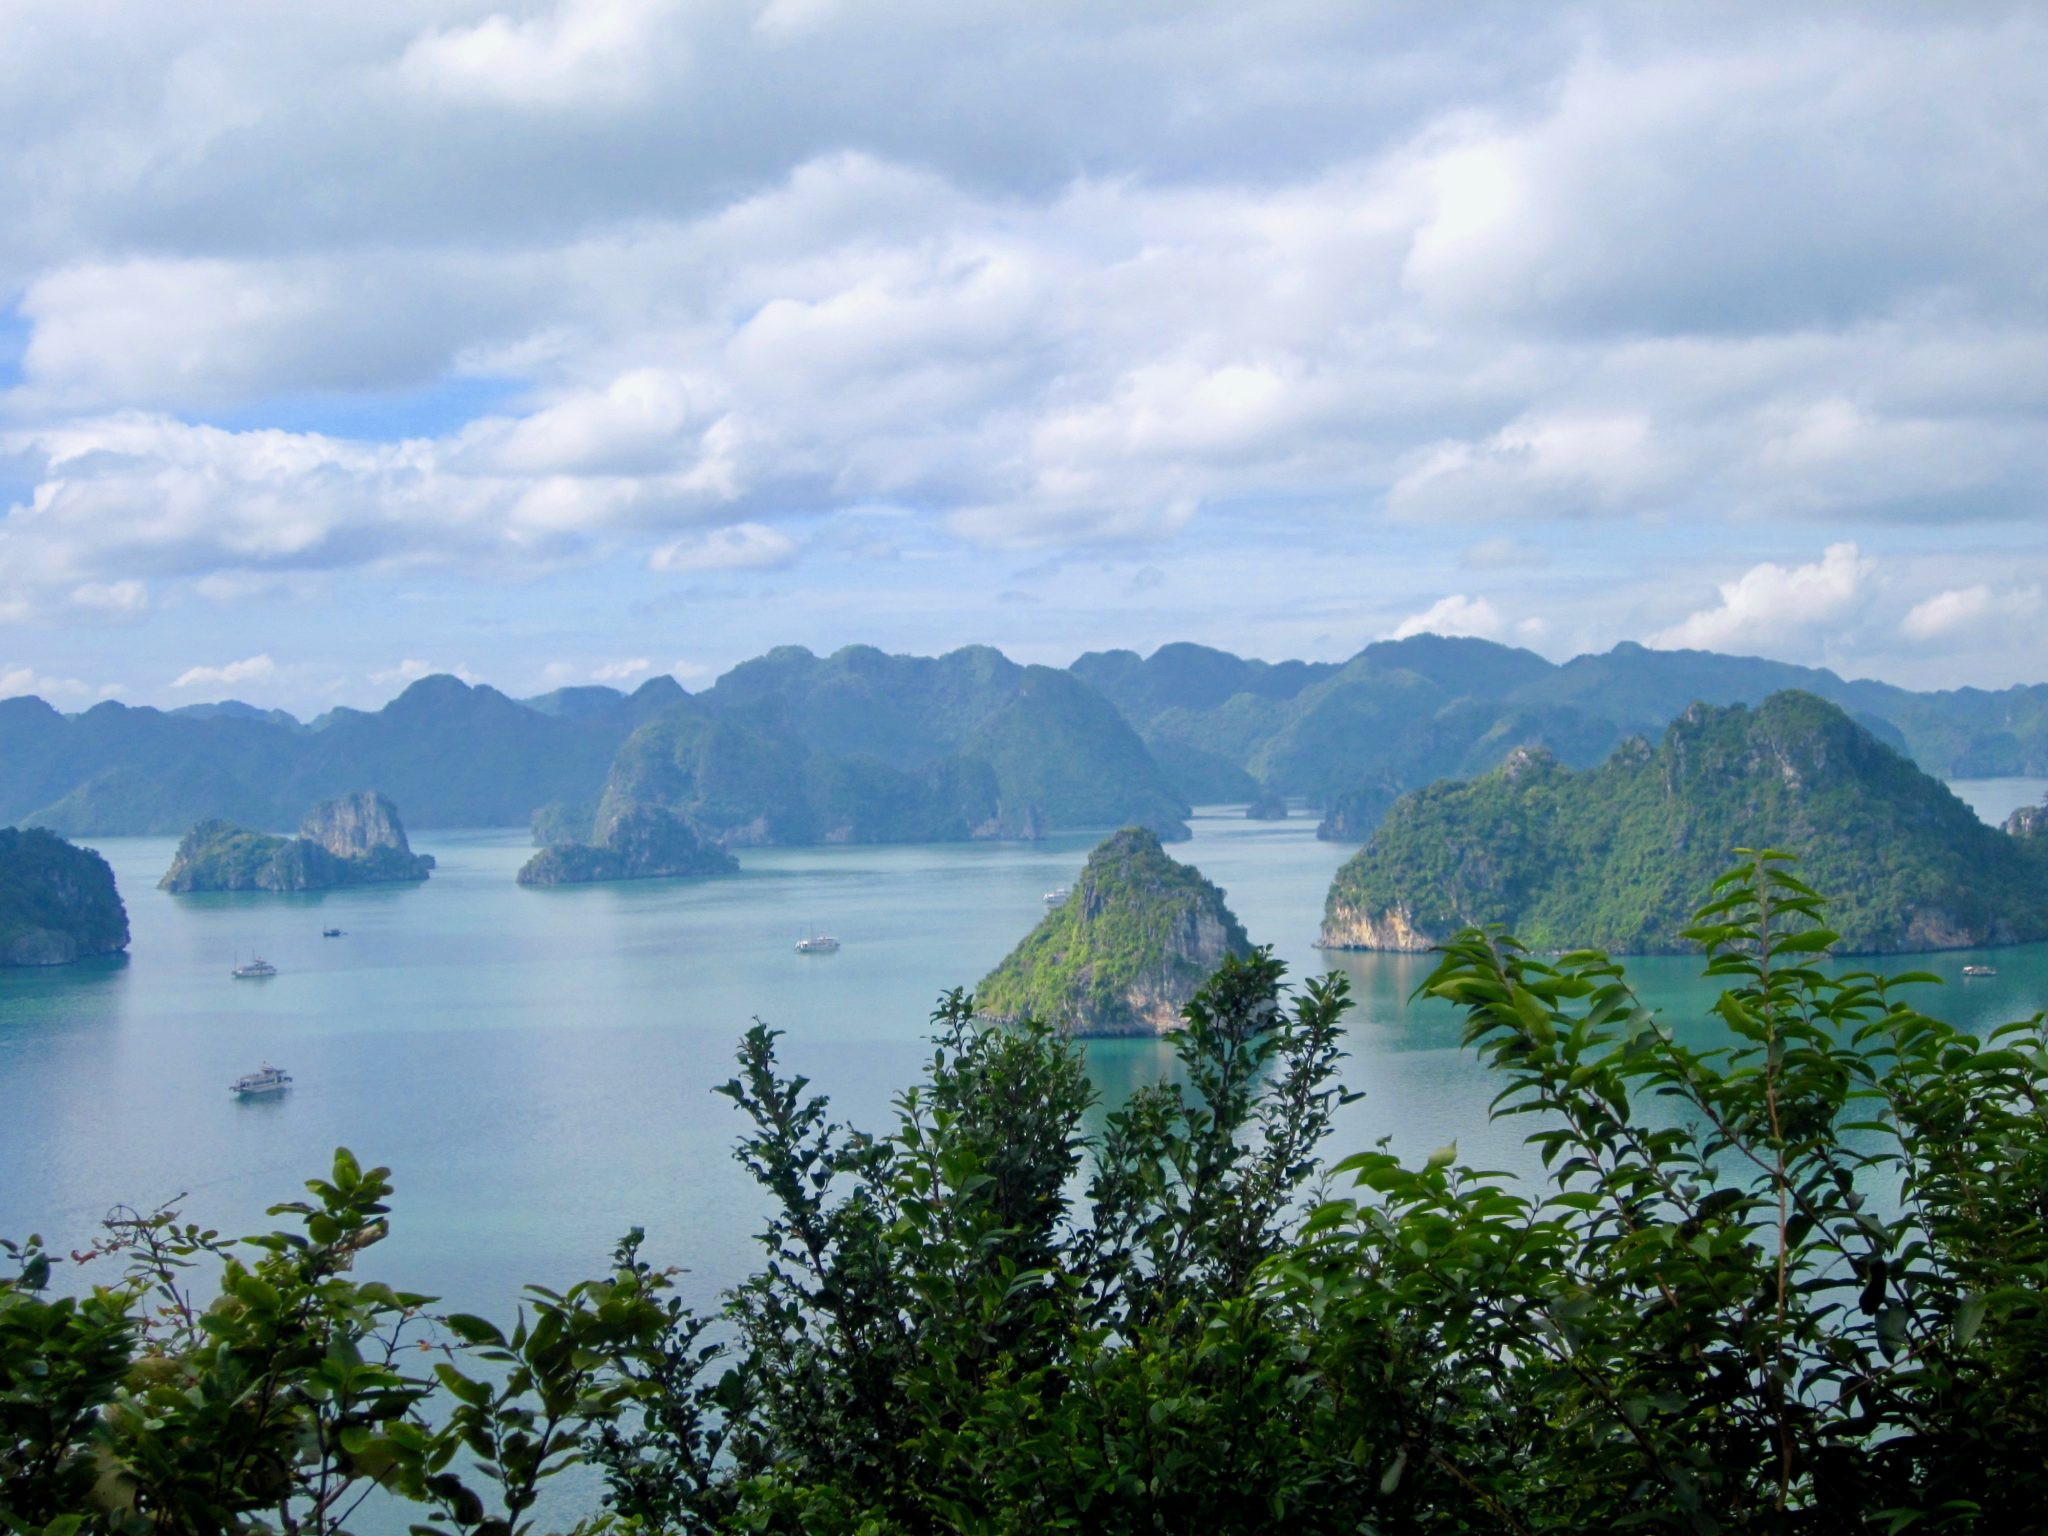 halong Bay in Vietnam is stunning